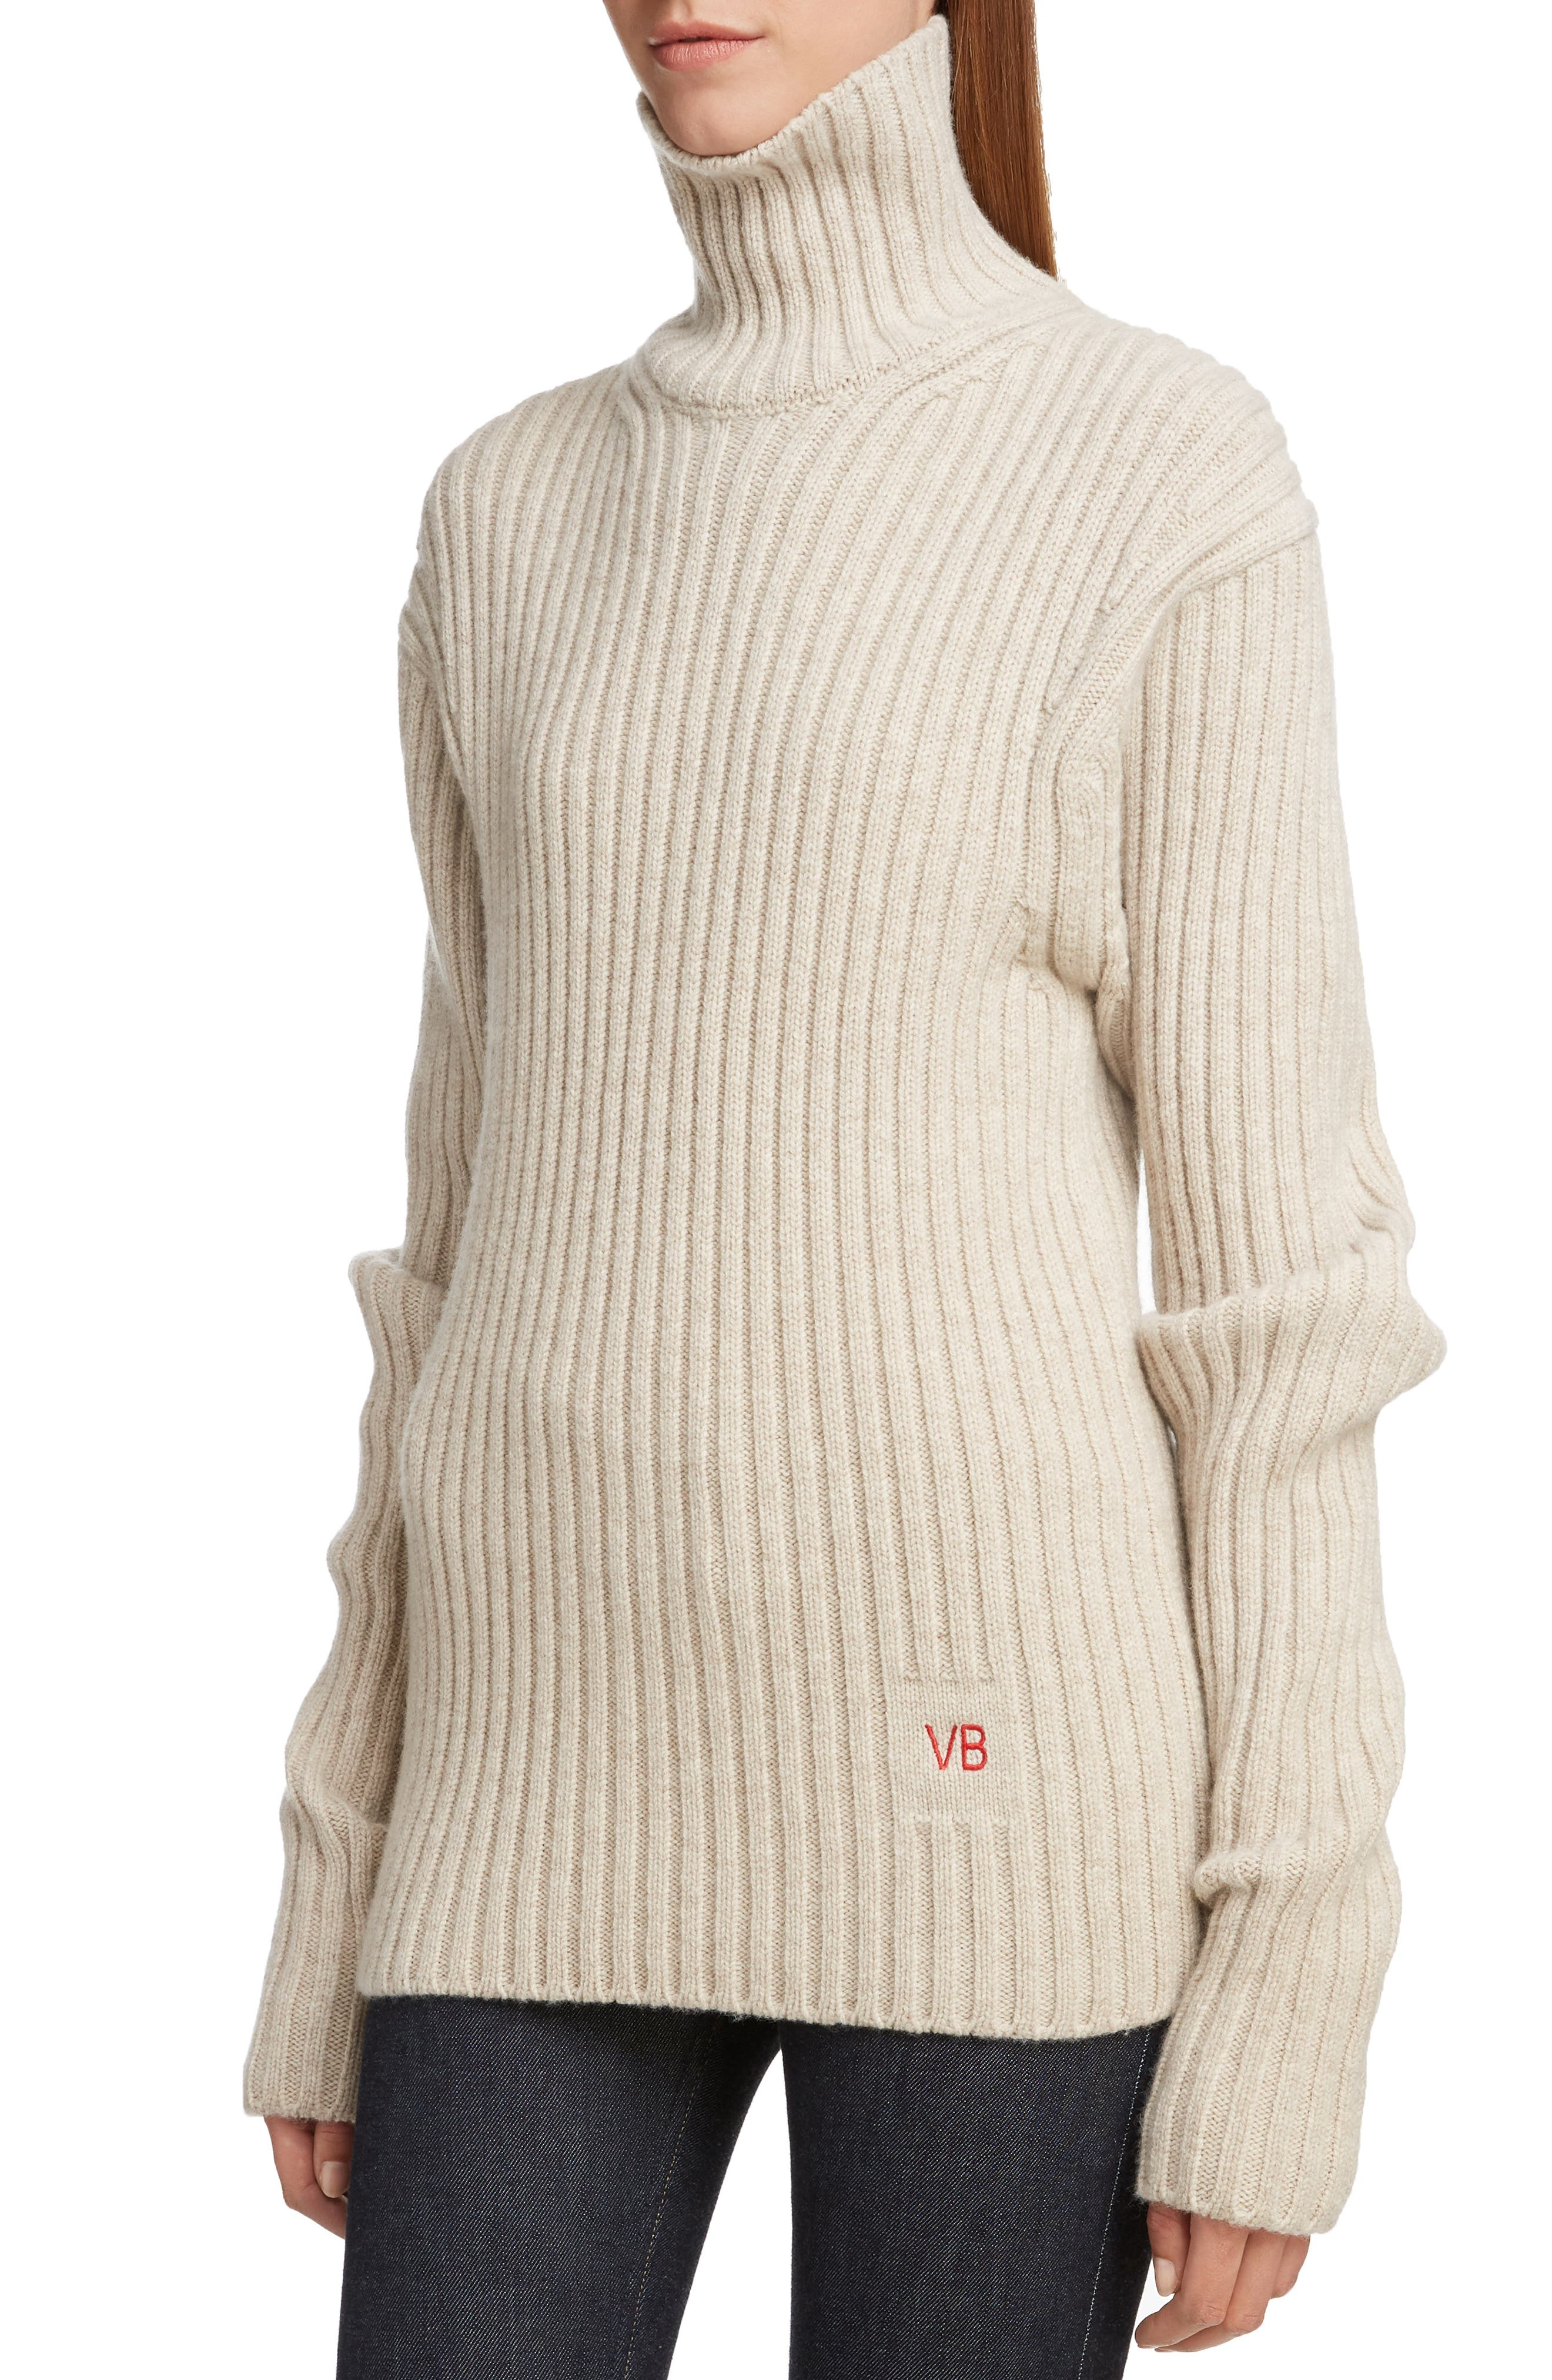 VICTORIA BECKHAM, Ribbed Wool Turtleneck Sweater, Alternate thumbnail 4, color, OATMEAL